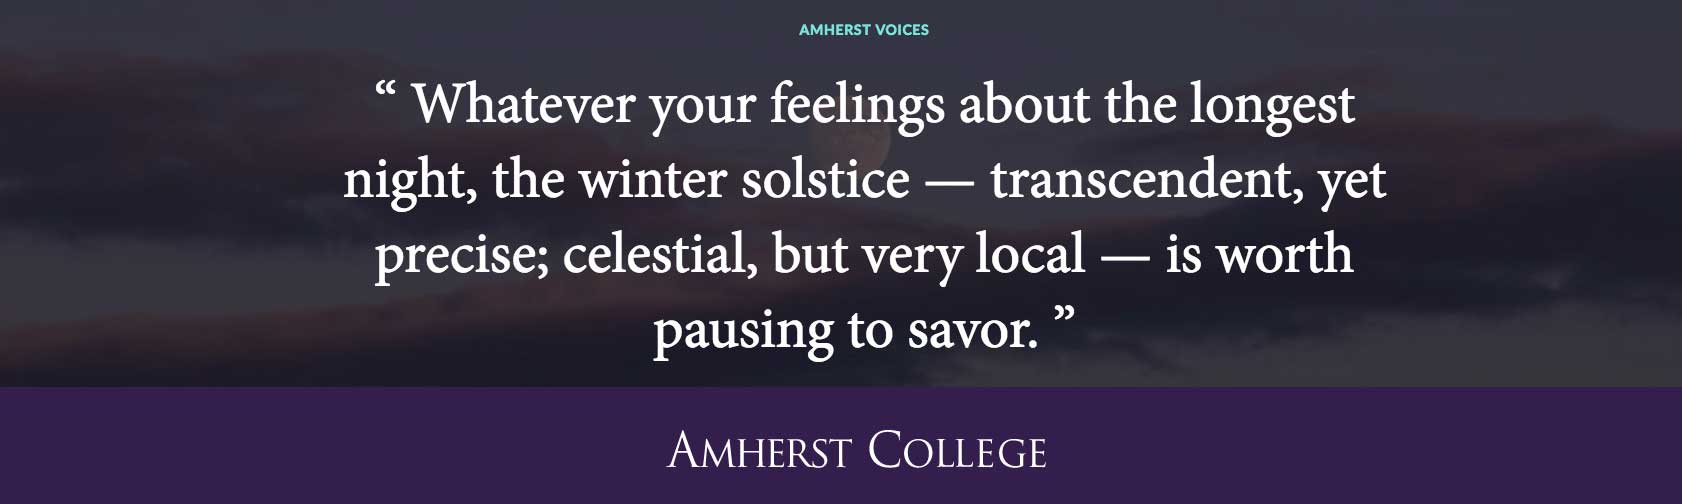 Quote by Mark Vanhoenacker '96 in praise of darkness